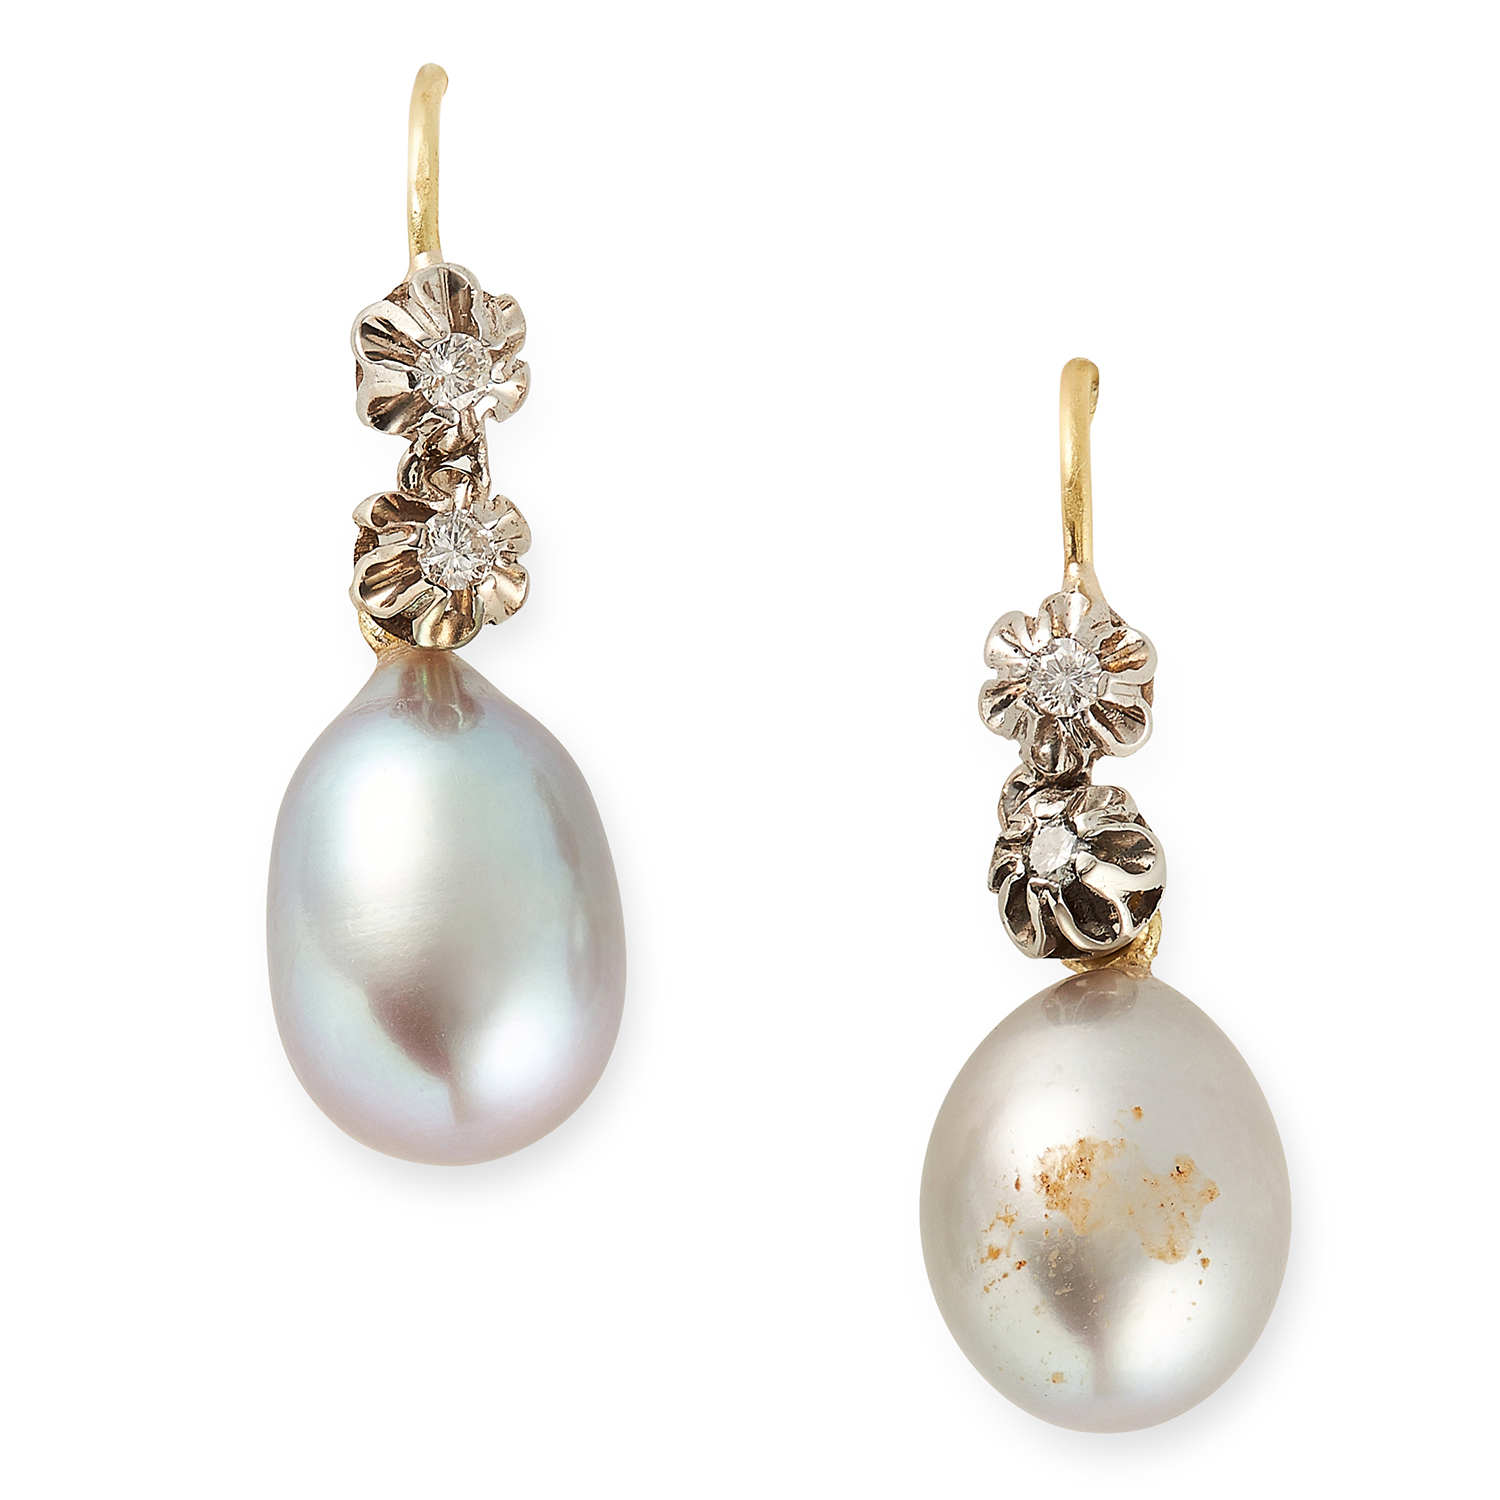 Los 43 - A PAIR OF PEARL AND DIAMOND EARRINGS the articulated bodies of each set with round cut diamonds